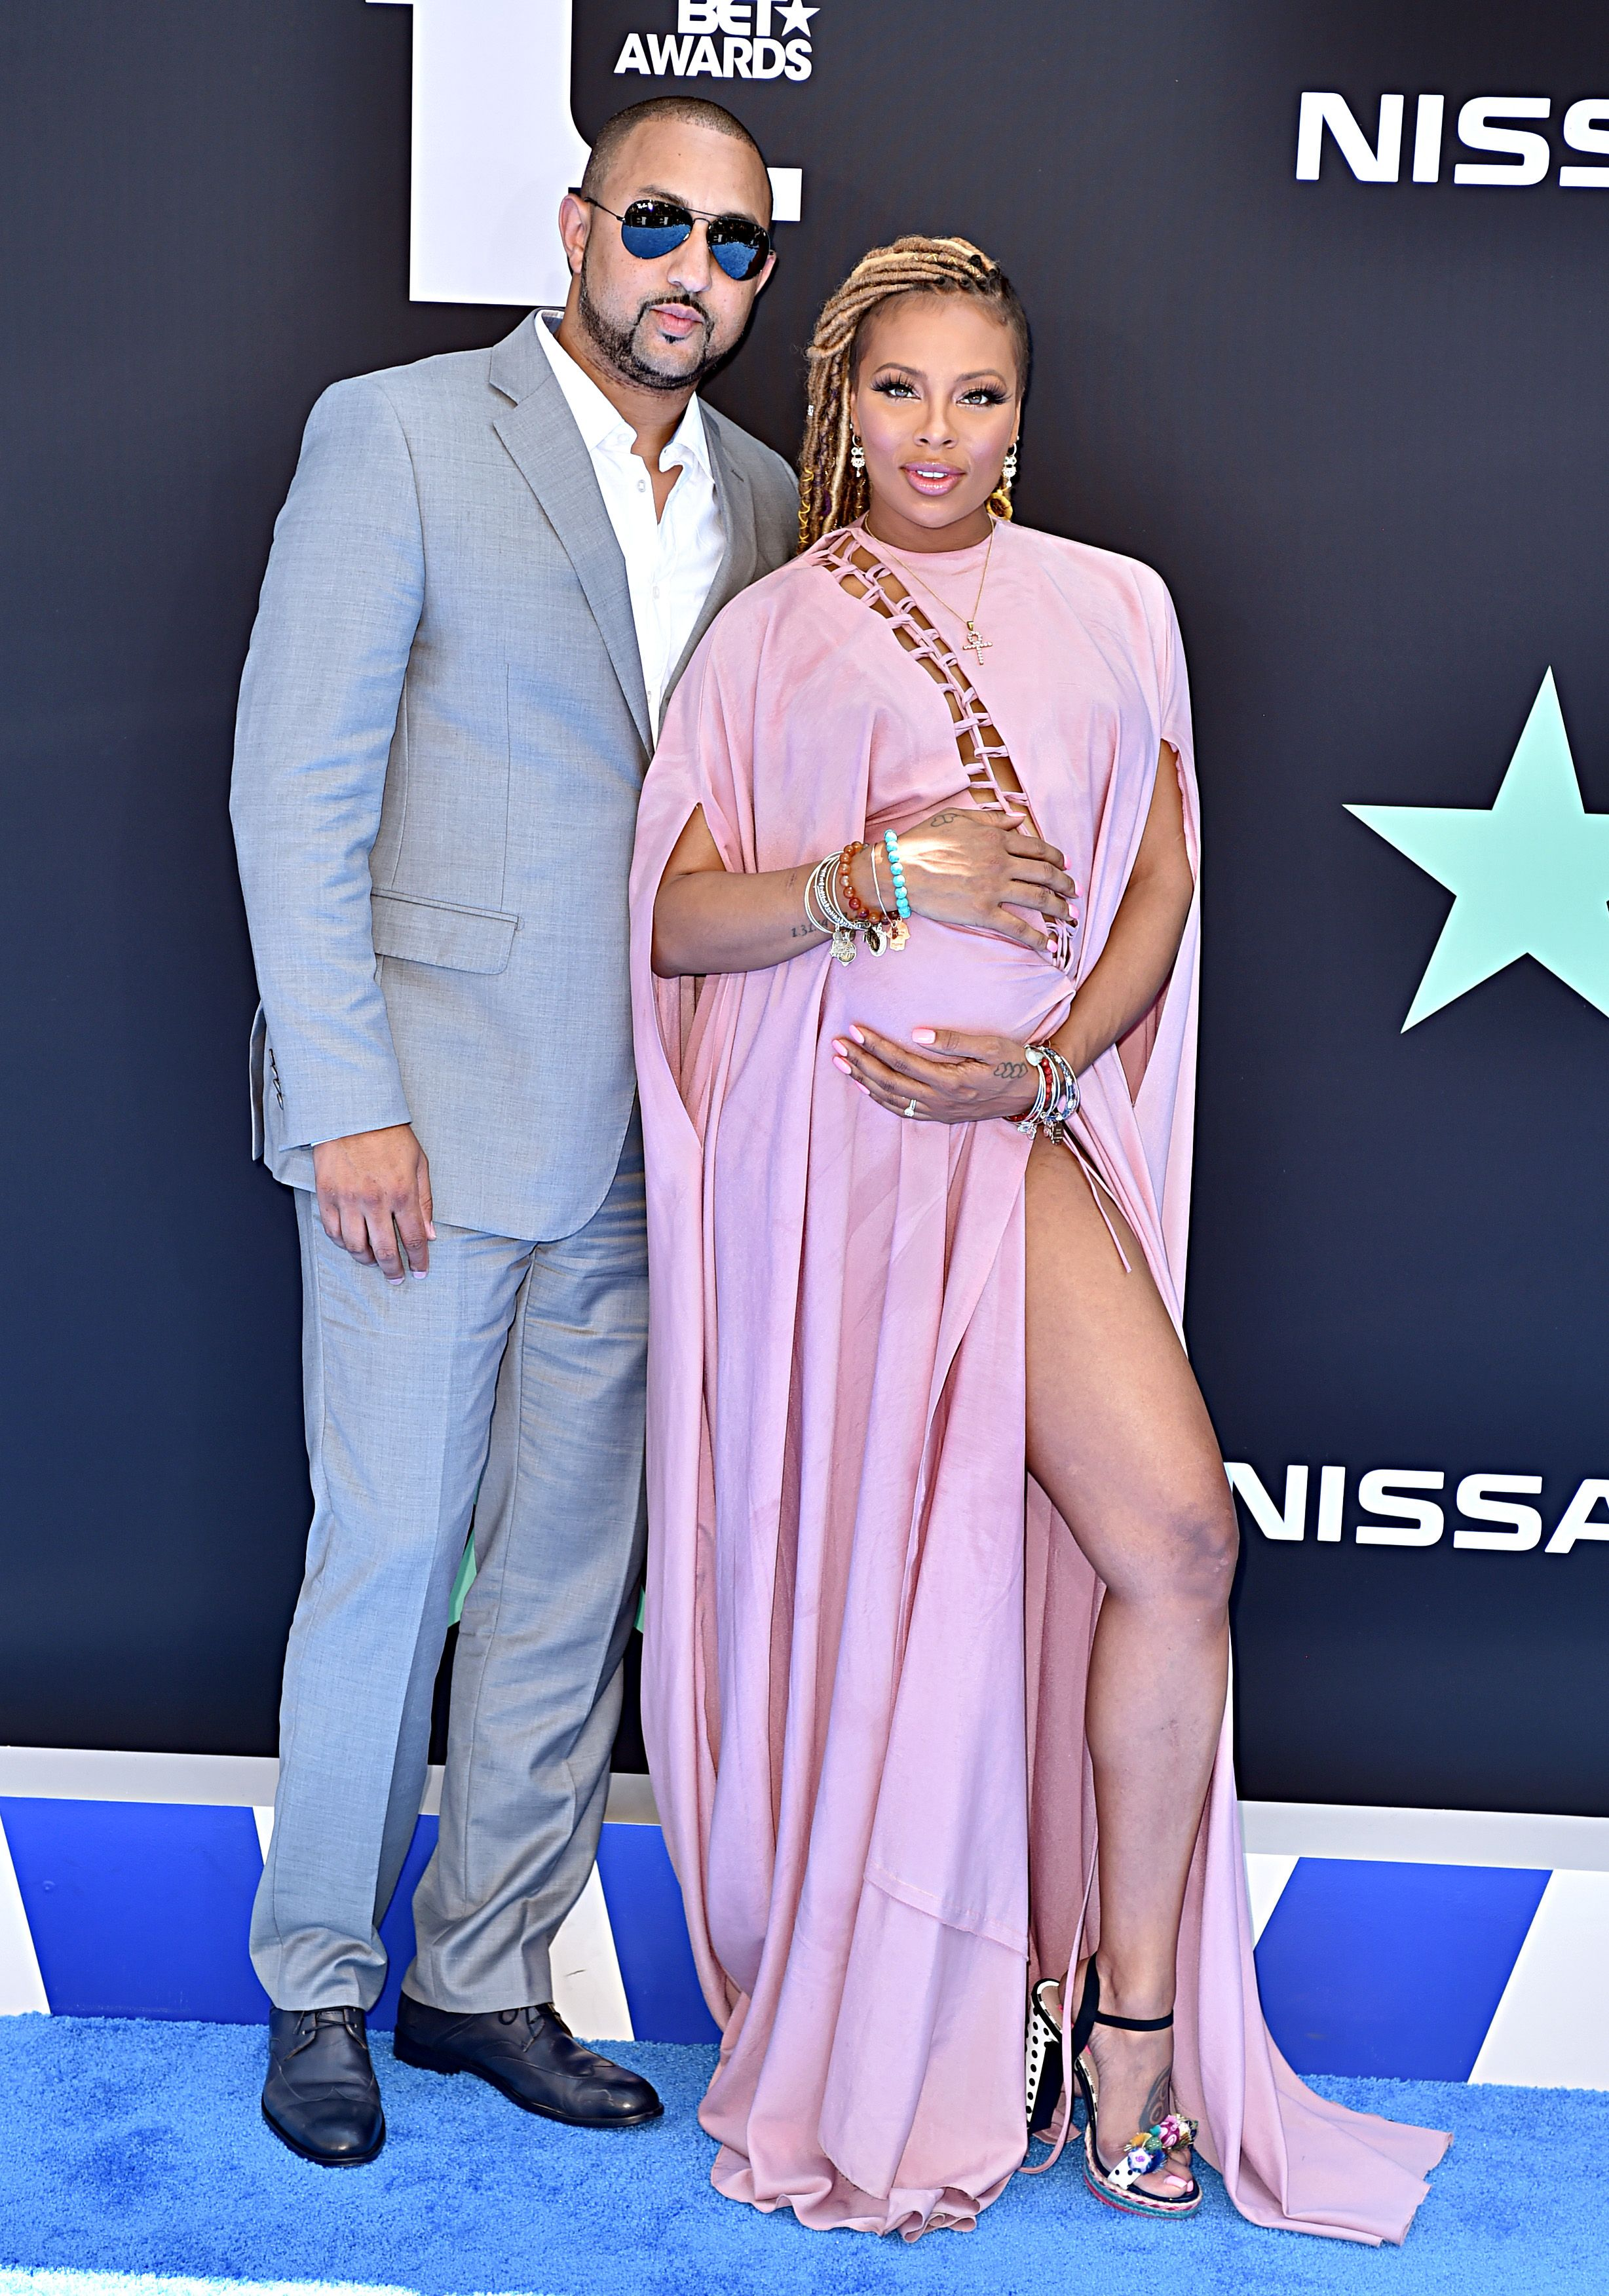 Eva Marcille and Michael Sterling arrived in the red carpet at the 2019 BET Awards on June 23, 2019, in Los Angeles, California | Source: Getty Images (Photo by Rodin Eckenroth/WireImage)